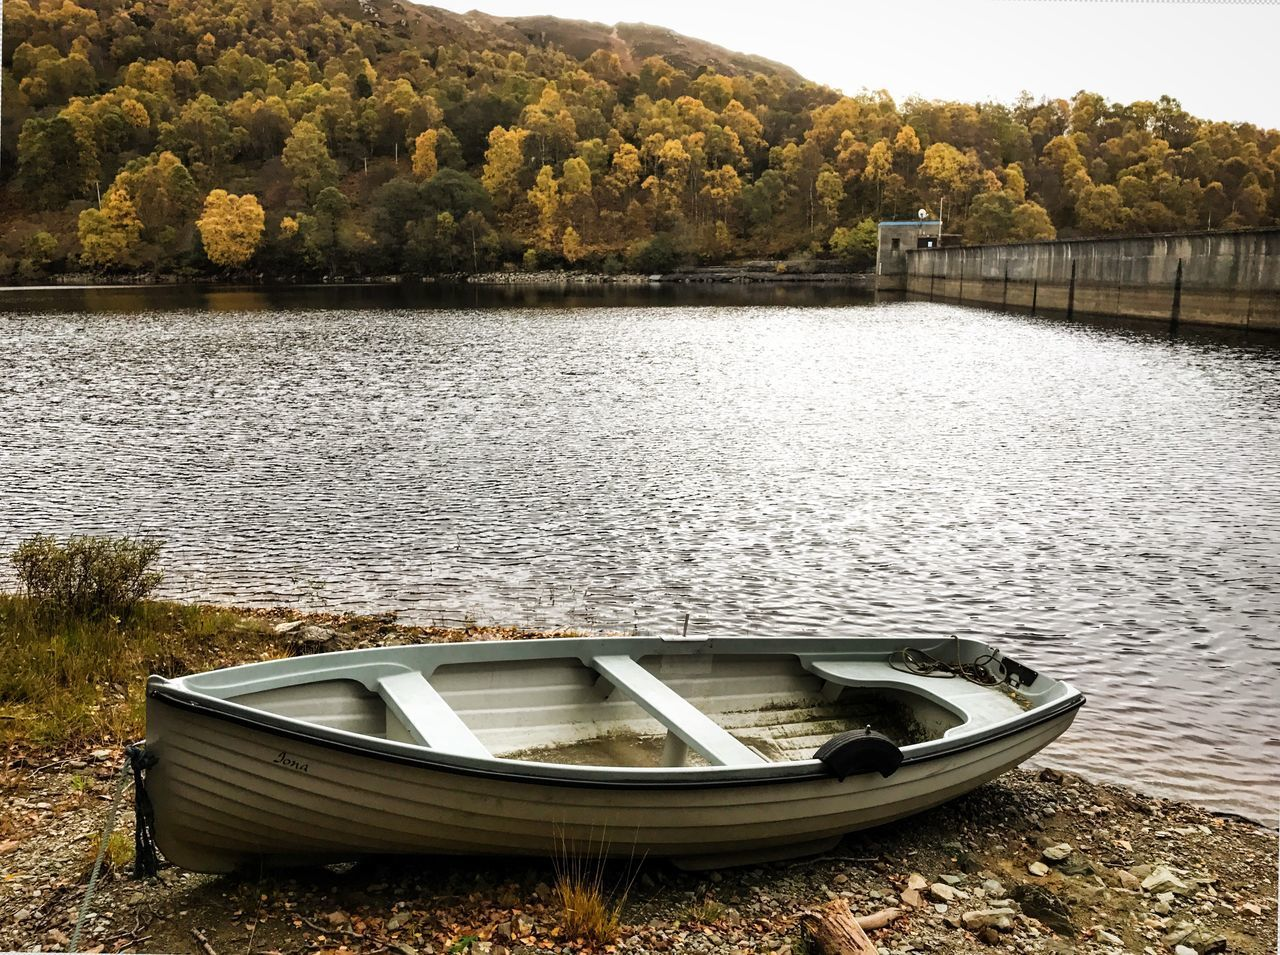 water, lake, tree, nautical vessel, outdoors, nature, transportation, day, rowboat, no people, moored, tranquility, beauty in nature